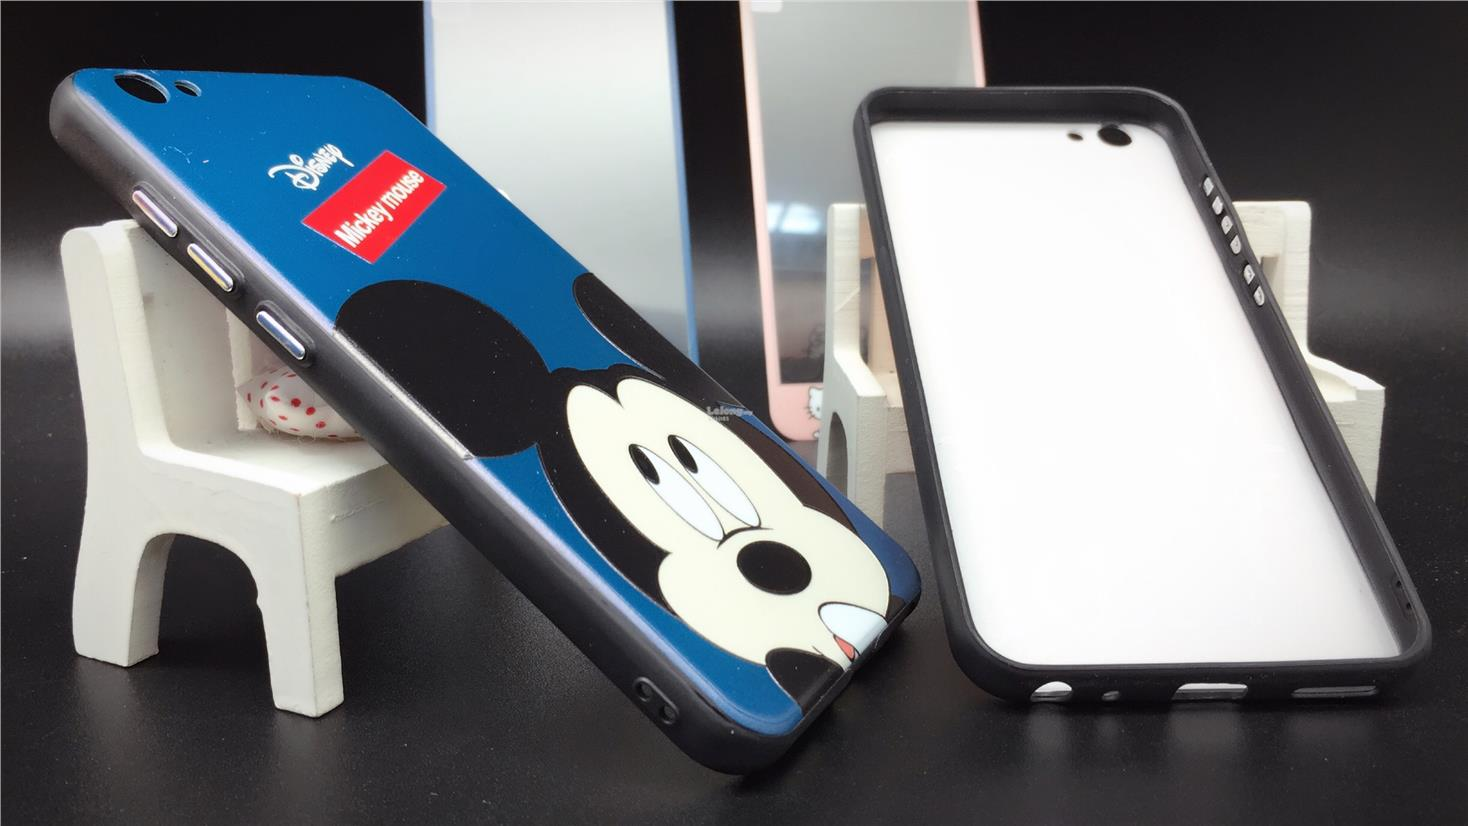 best service 0ca0c 27edf Oppo A57 A59 F1s R9s Plus Cartoon Case Cover & Tempered Glass